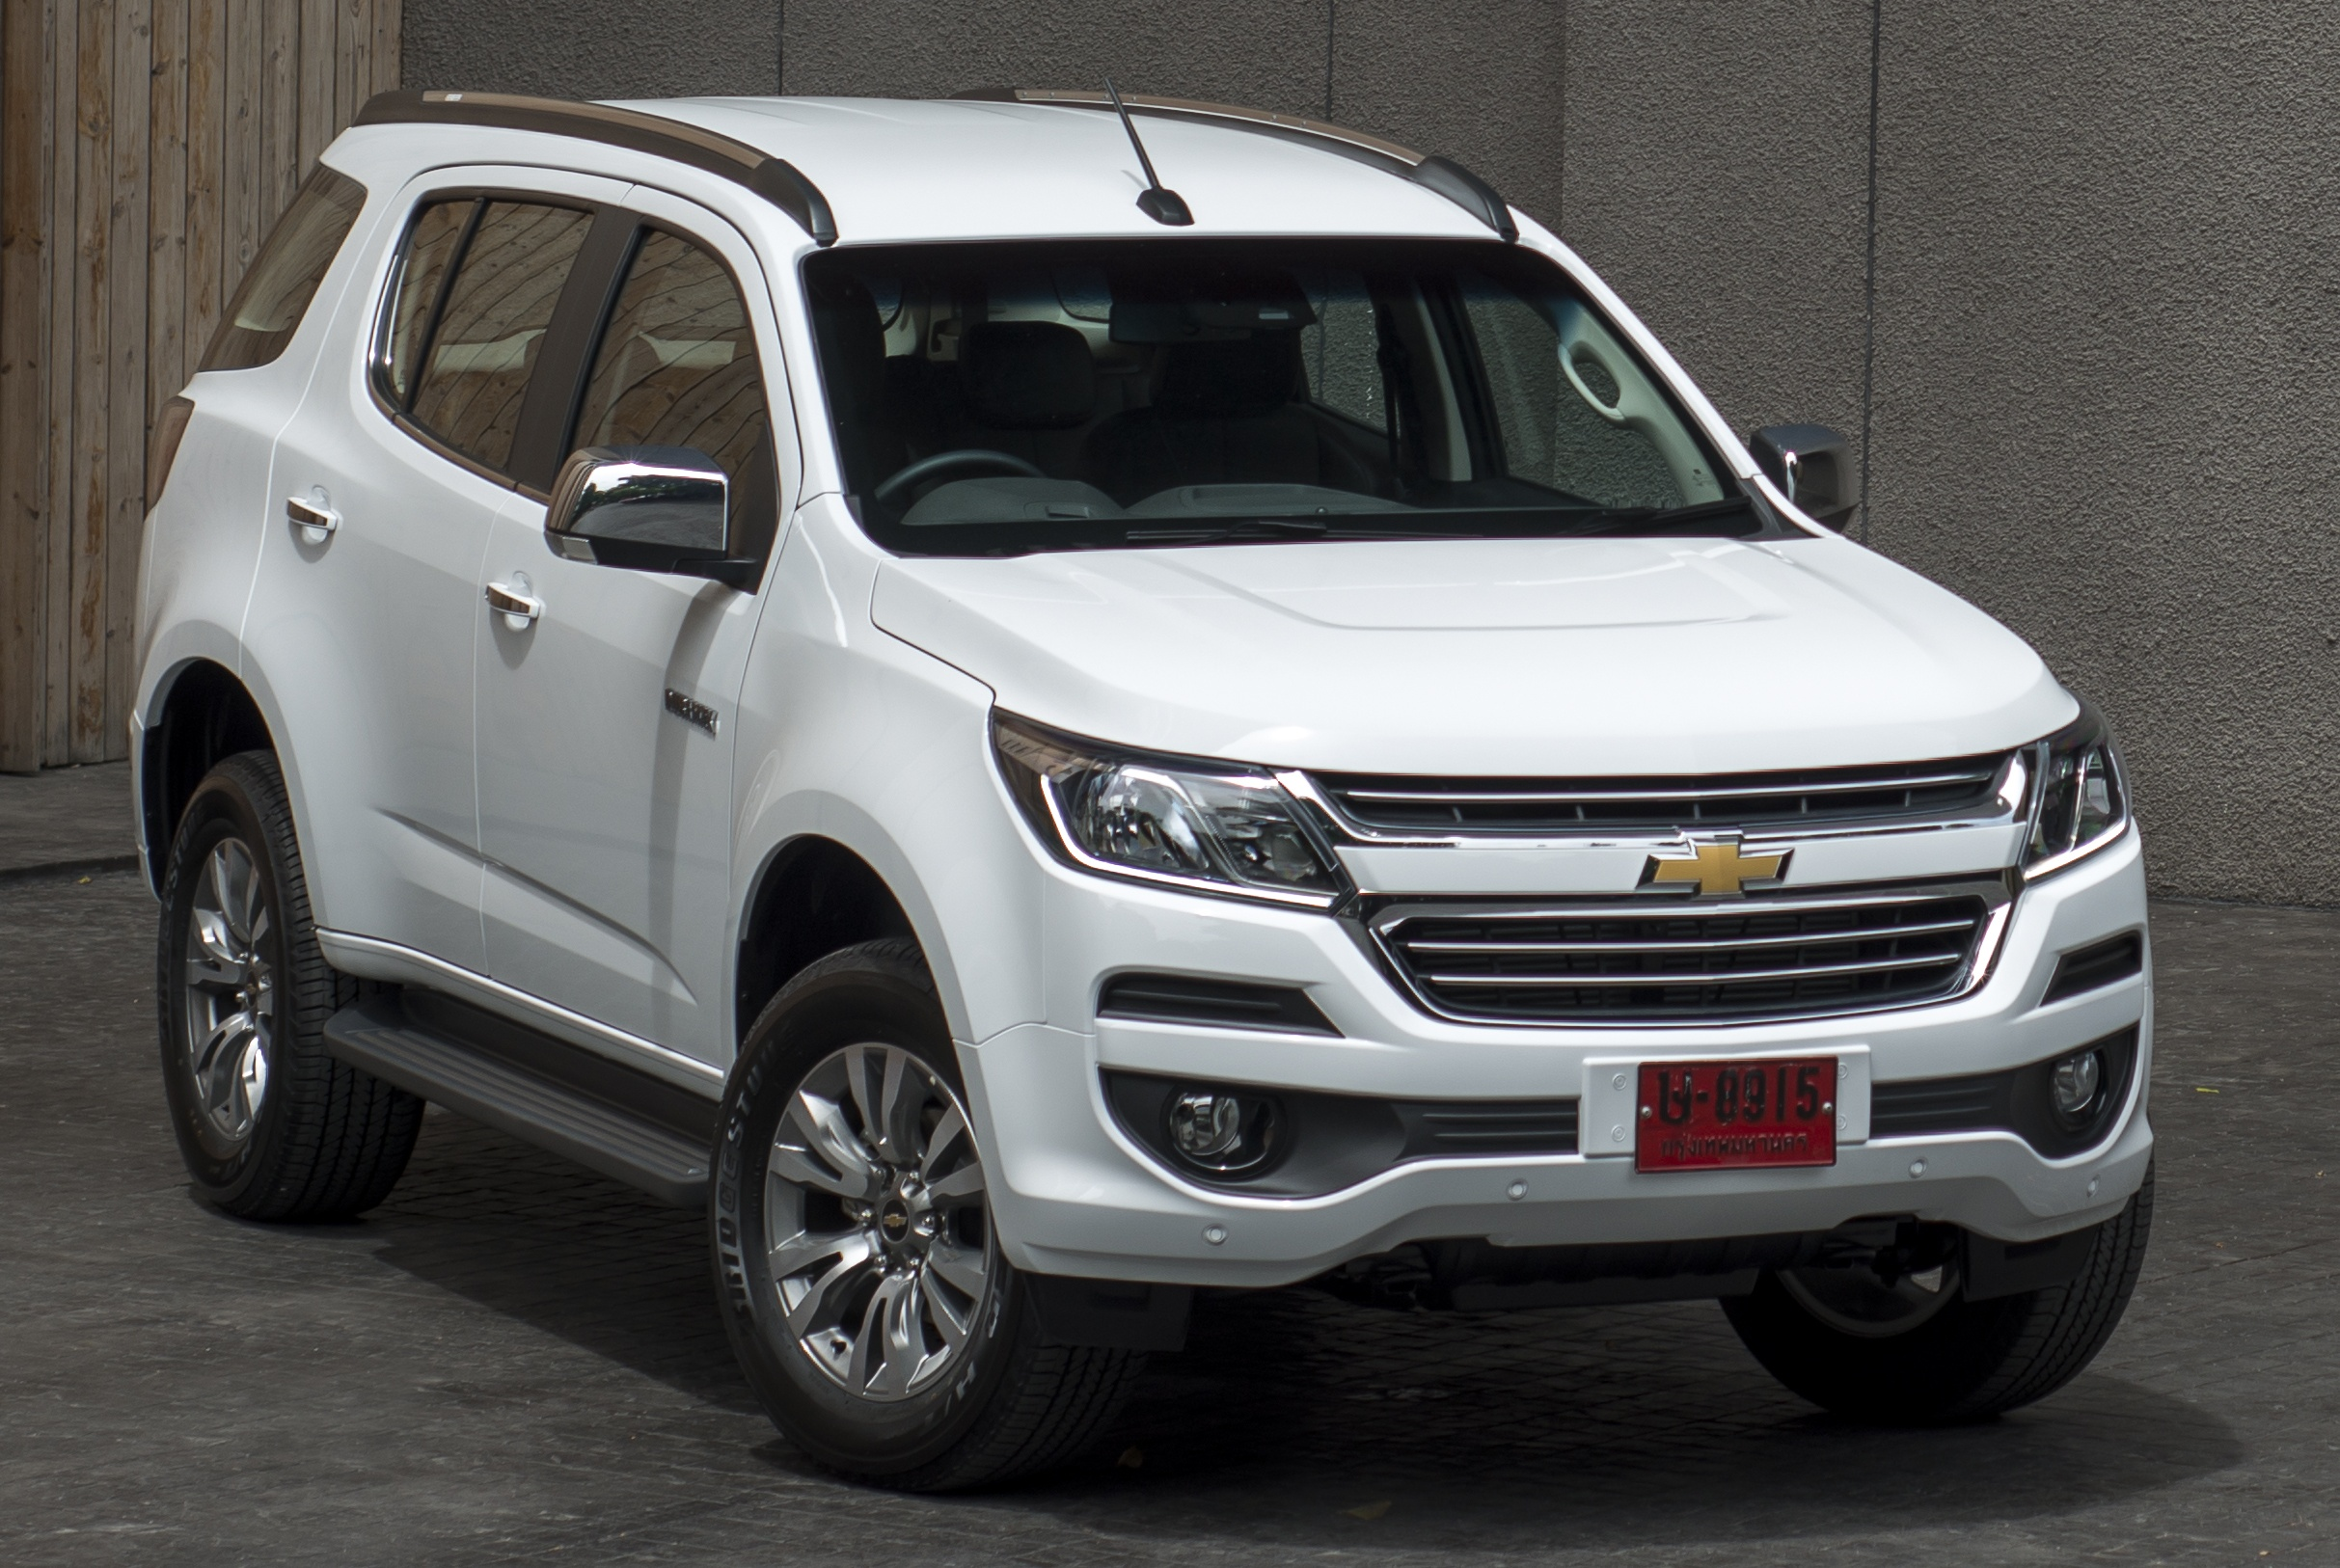 Chevrolet Trailblazer facelift launched in Bangkok